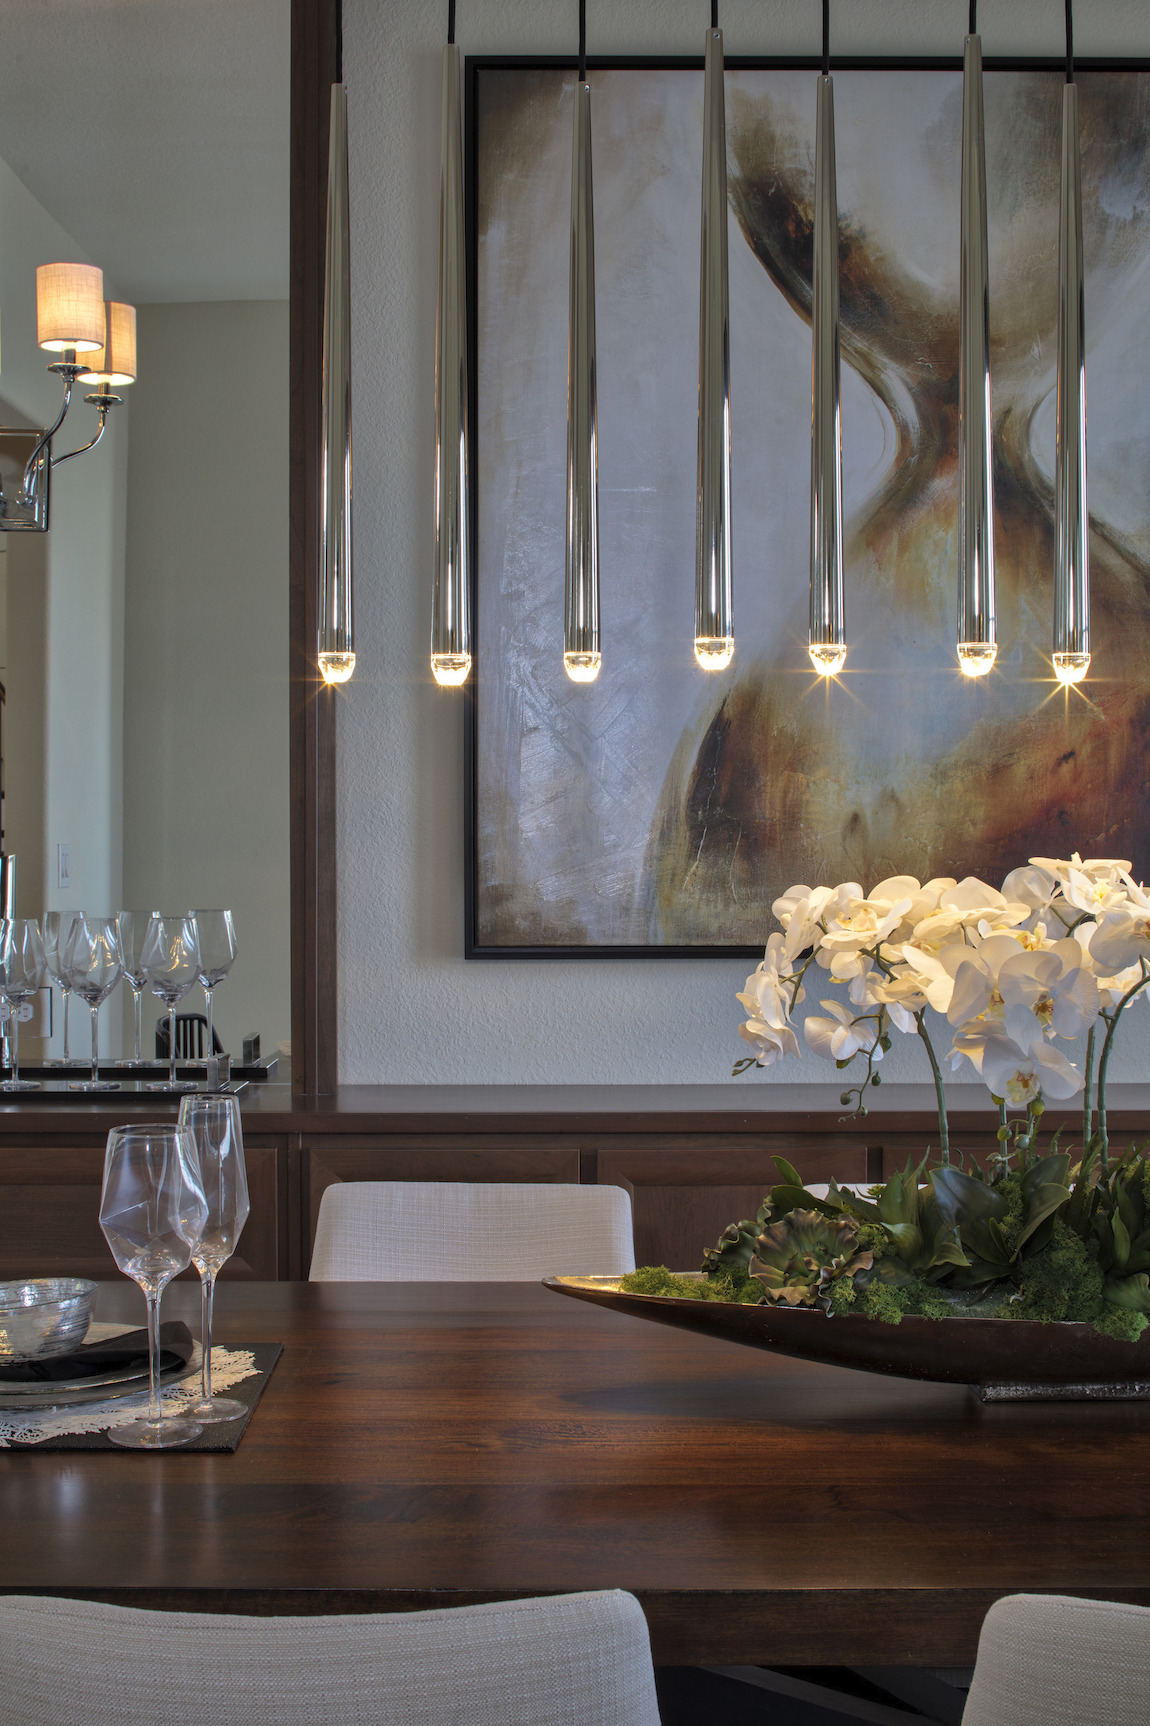 27 bright lighting ideas for your home